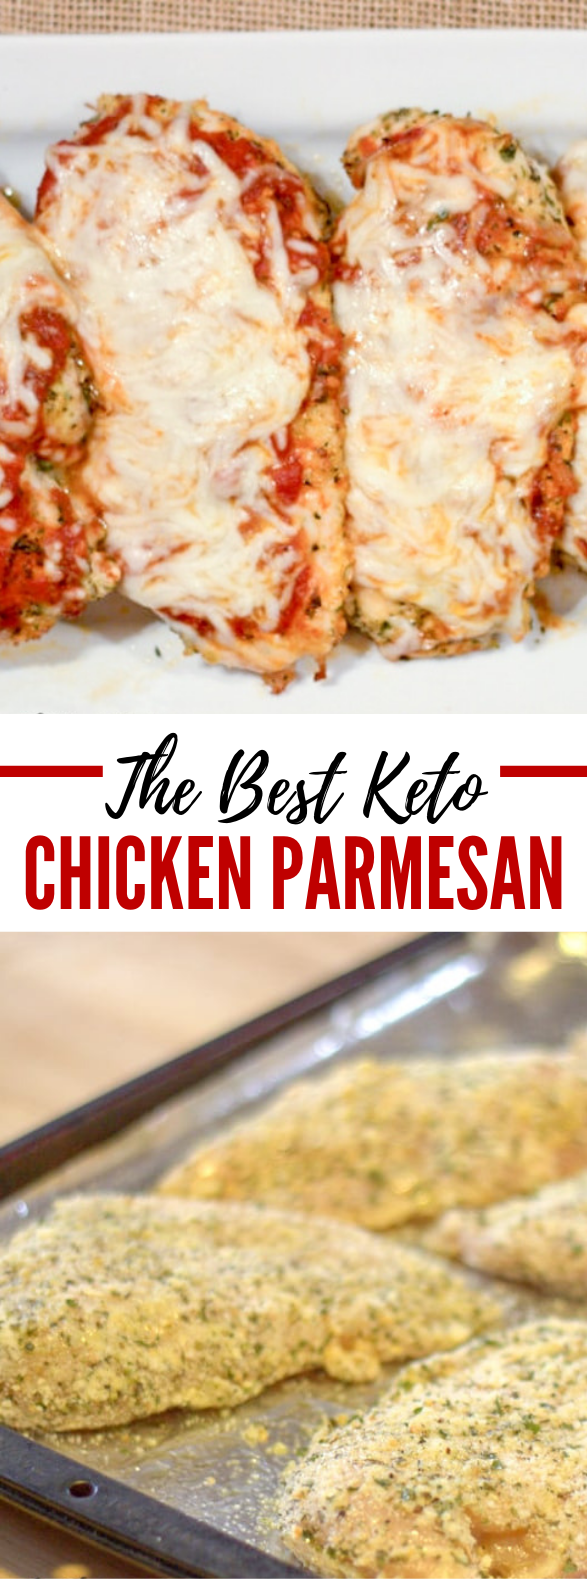 BAKED CHICKEN PARMESAN KETO LOW CARB GLUTEN-FREE #ketodiet #healthy